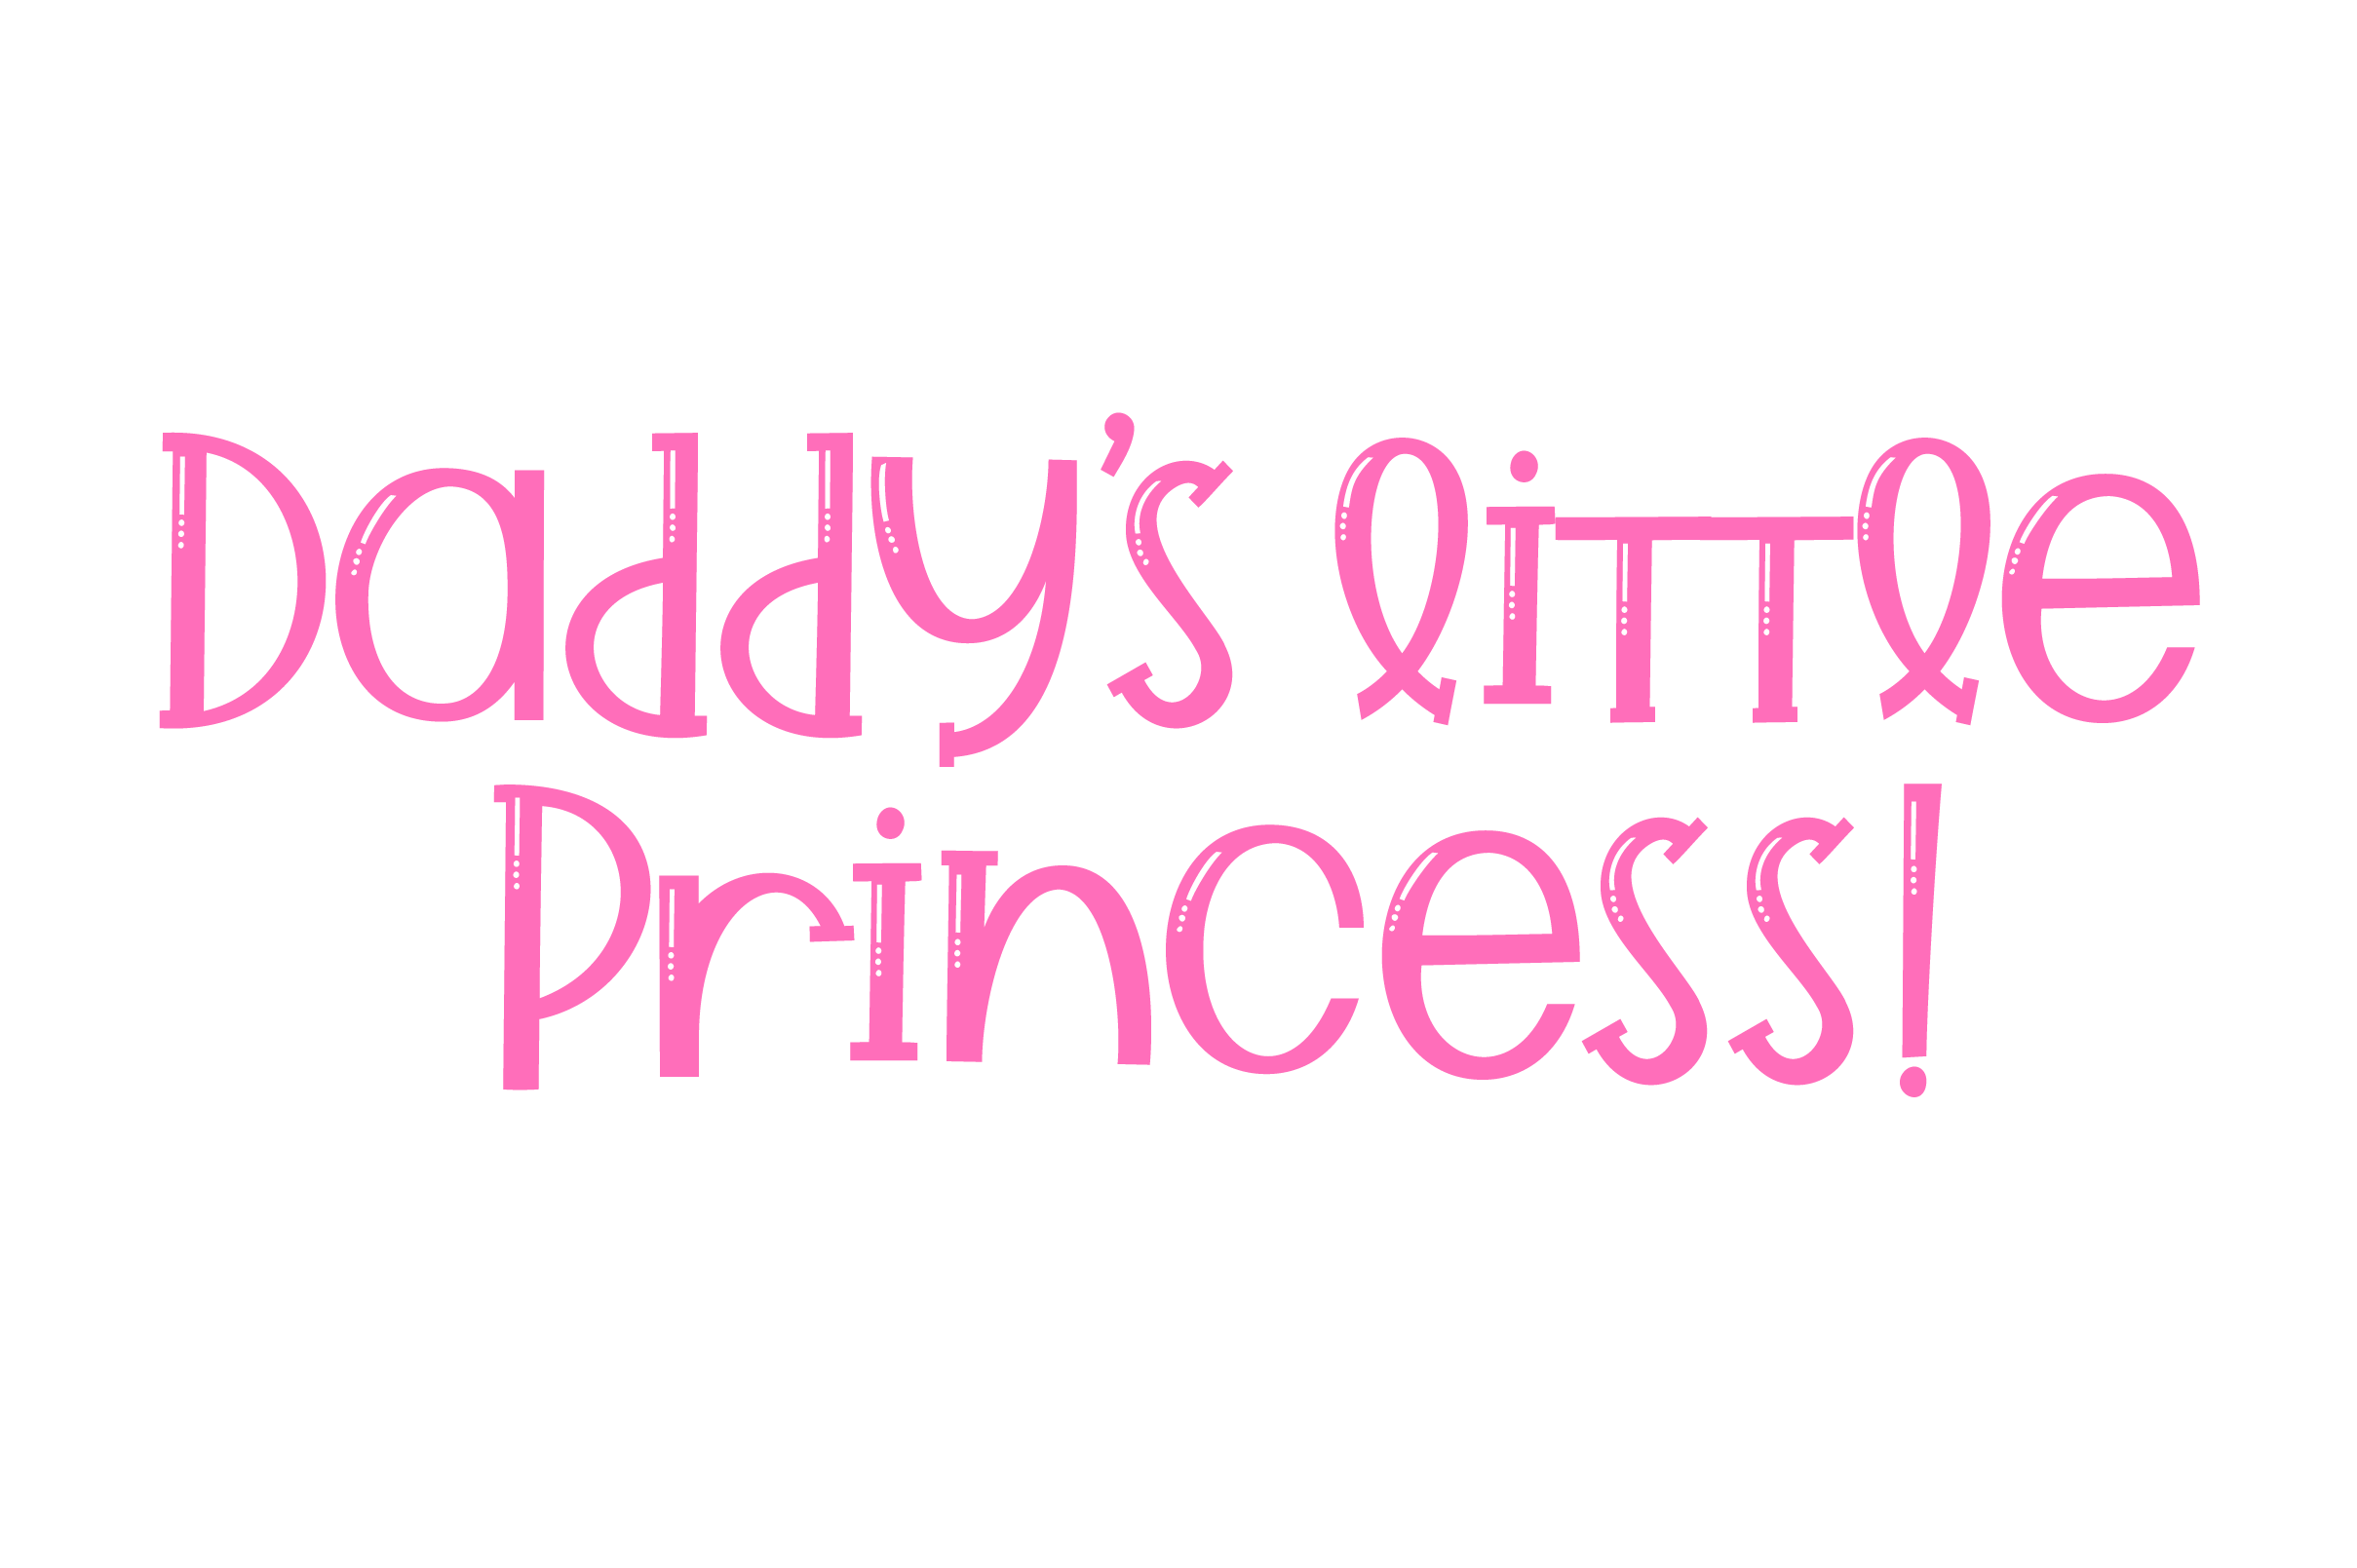 Cuddle Buddy A cute playful Font example image 5